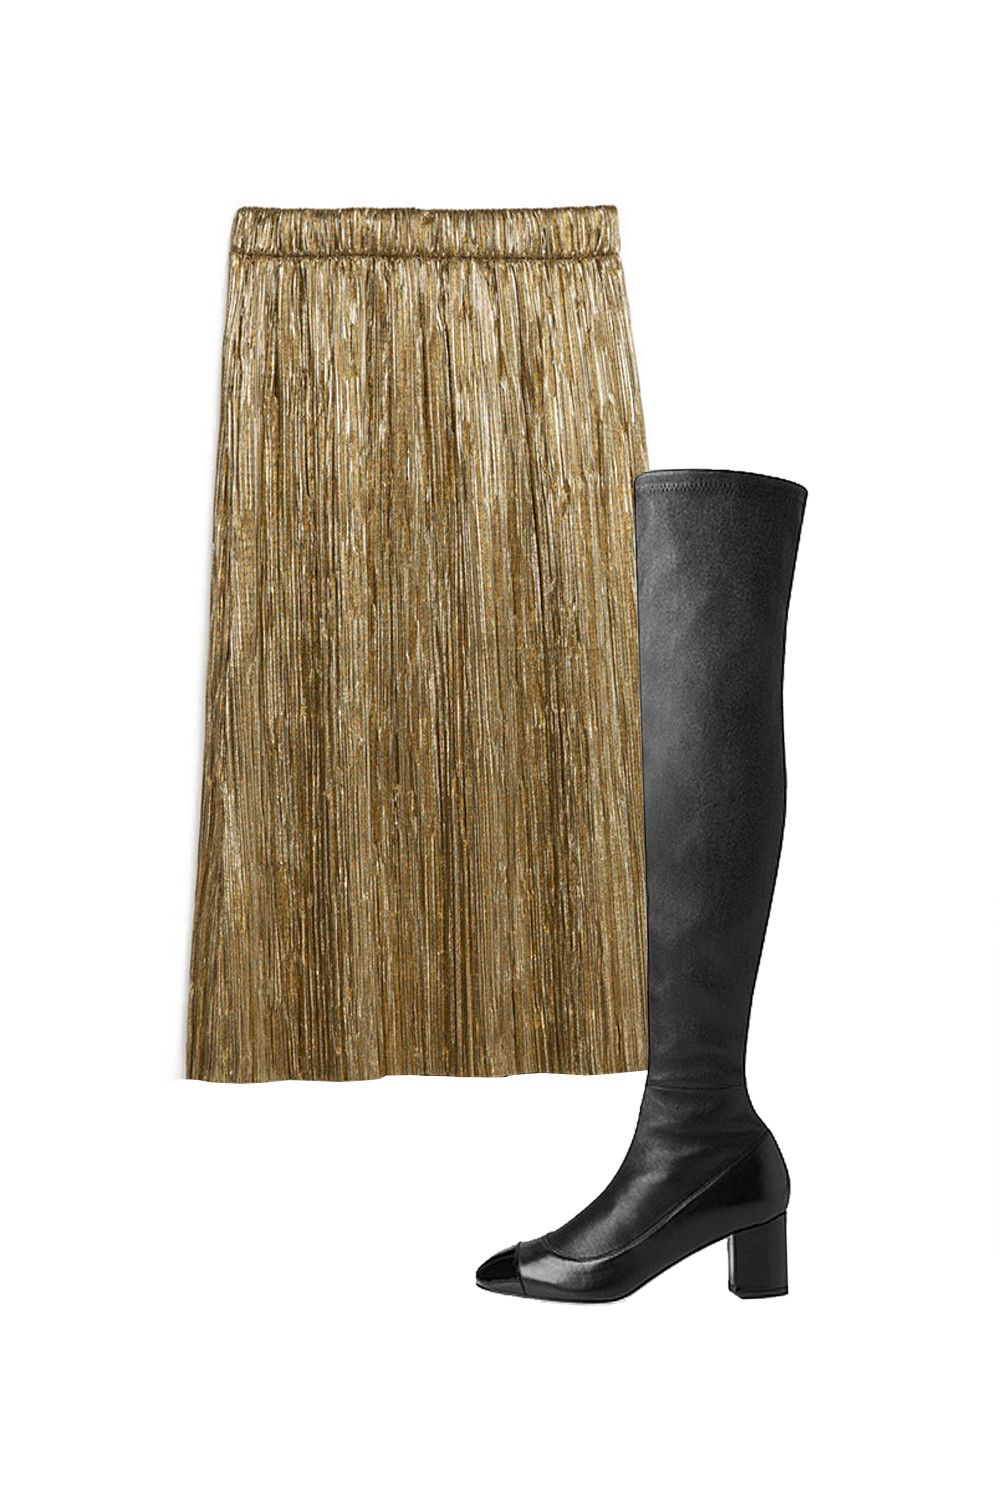 "<p>Oh? You don't have an accordion-pleated, preferably foil-finish skirt yet? Me neither, but we should really get on that because they are swishy! And Gucci. Alessandro Michele started out pairing them with loafers and pumps, but for pre-fall, he went with tall, metallic boots. Don't tell him this, but I like the more recent footwear choice better—less precious, you know?  </p><p>Zara pleated skirt, $40, <a href=""http://www.zara.com/us/en/collection-ss16/trf/skirts/accordion-pleat-skirt-c587006p3187092.html"">zara.com</a>; L.K. Bennett over-the-knee boot, $695, <a href=""http://bit.ly/208ZVLQ"">lkbennett.com</a>.</p>"